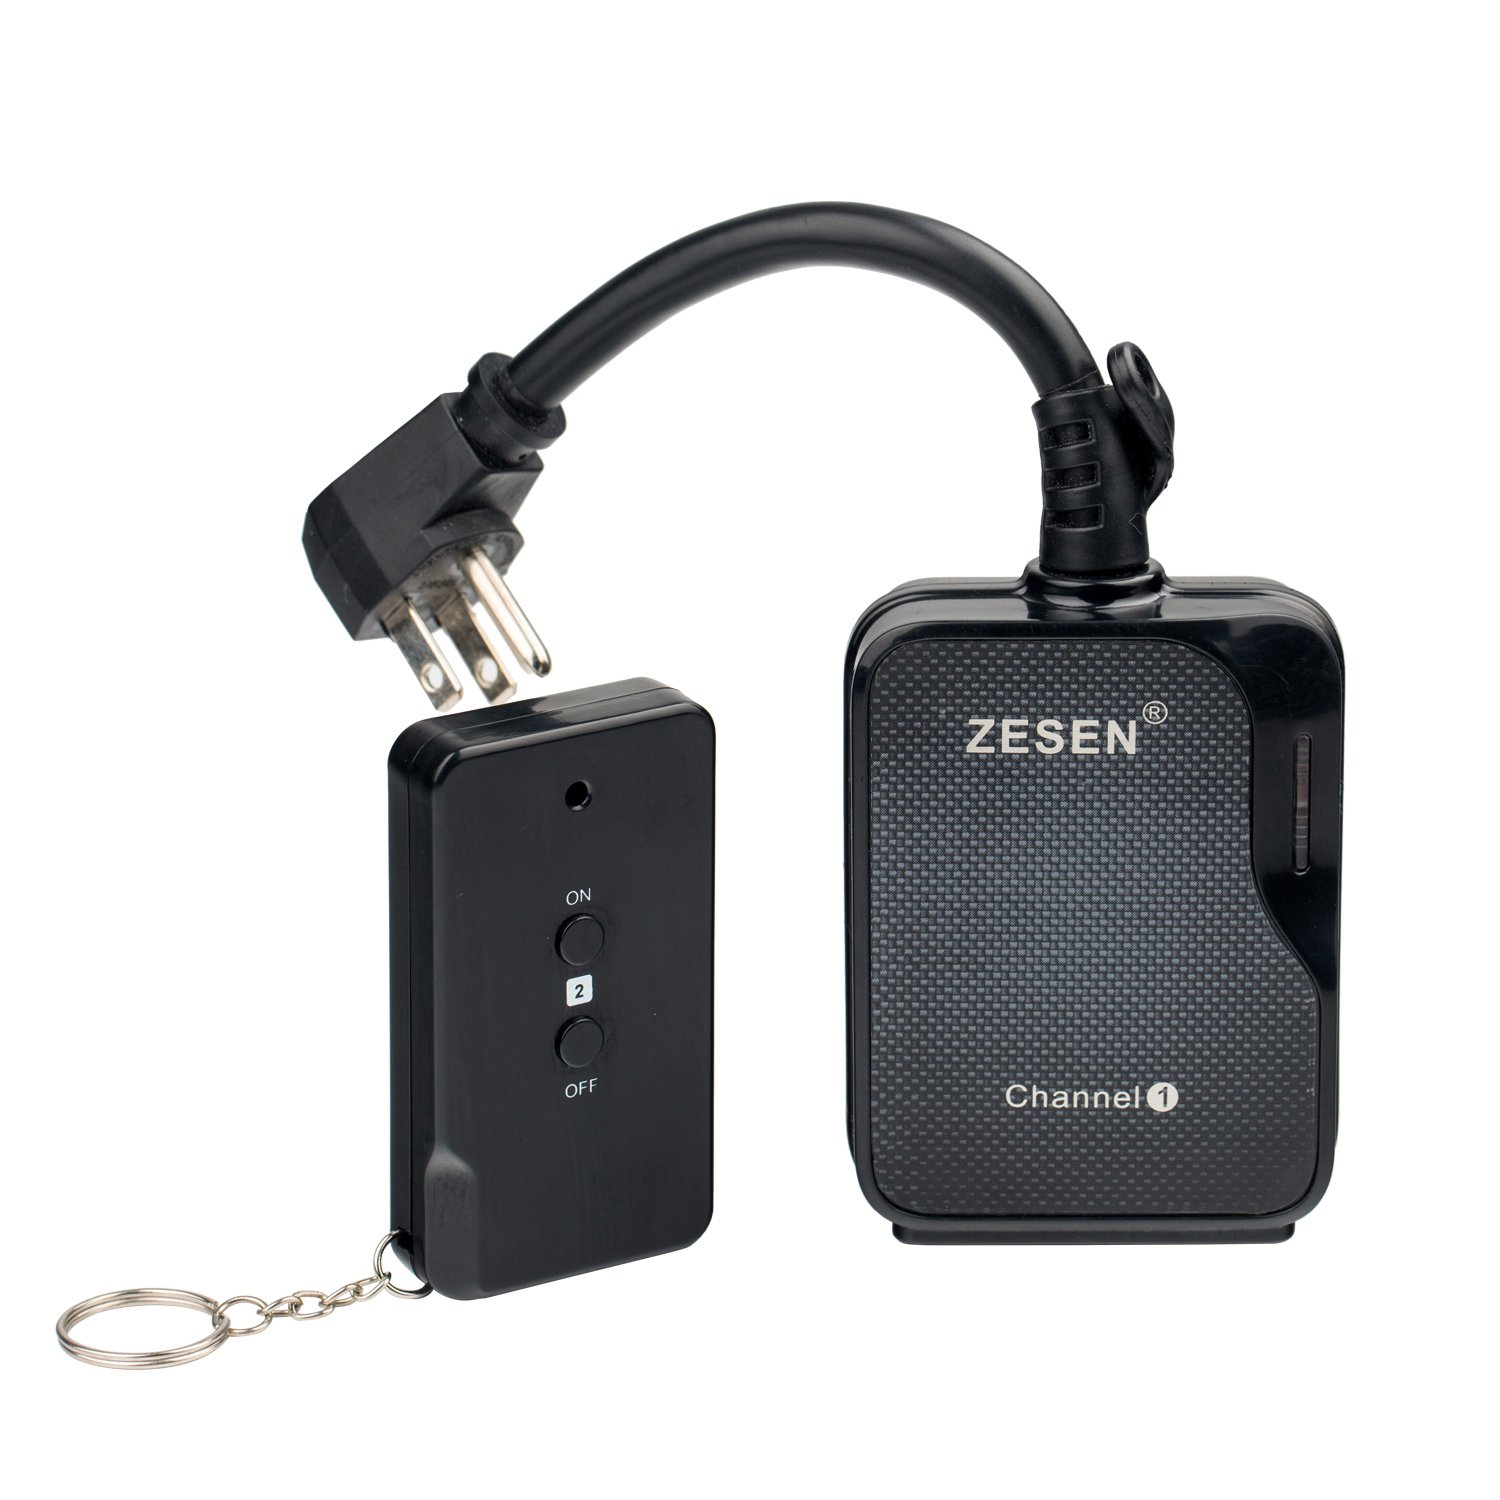 ZESEN Remote Control Outlet Timer Switch Waterproof for Household Appliances, 3-Prong Plug-in, FCC ETL Listed, Black